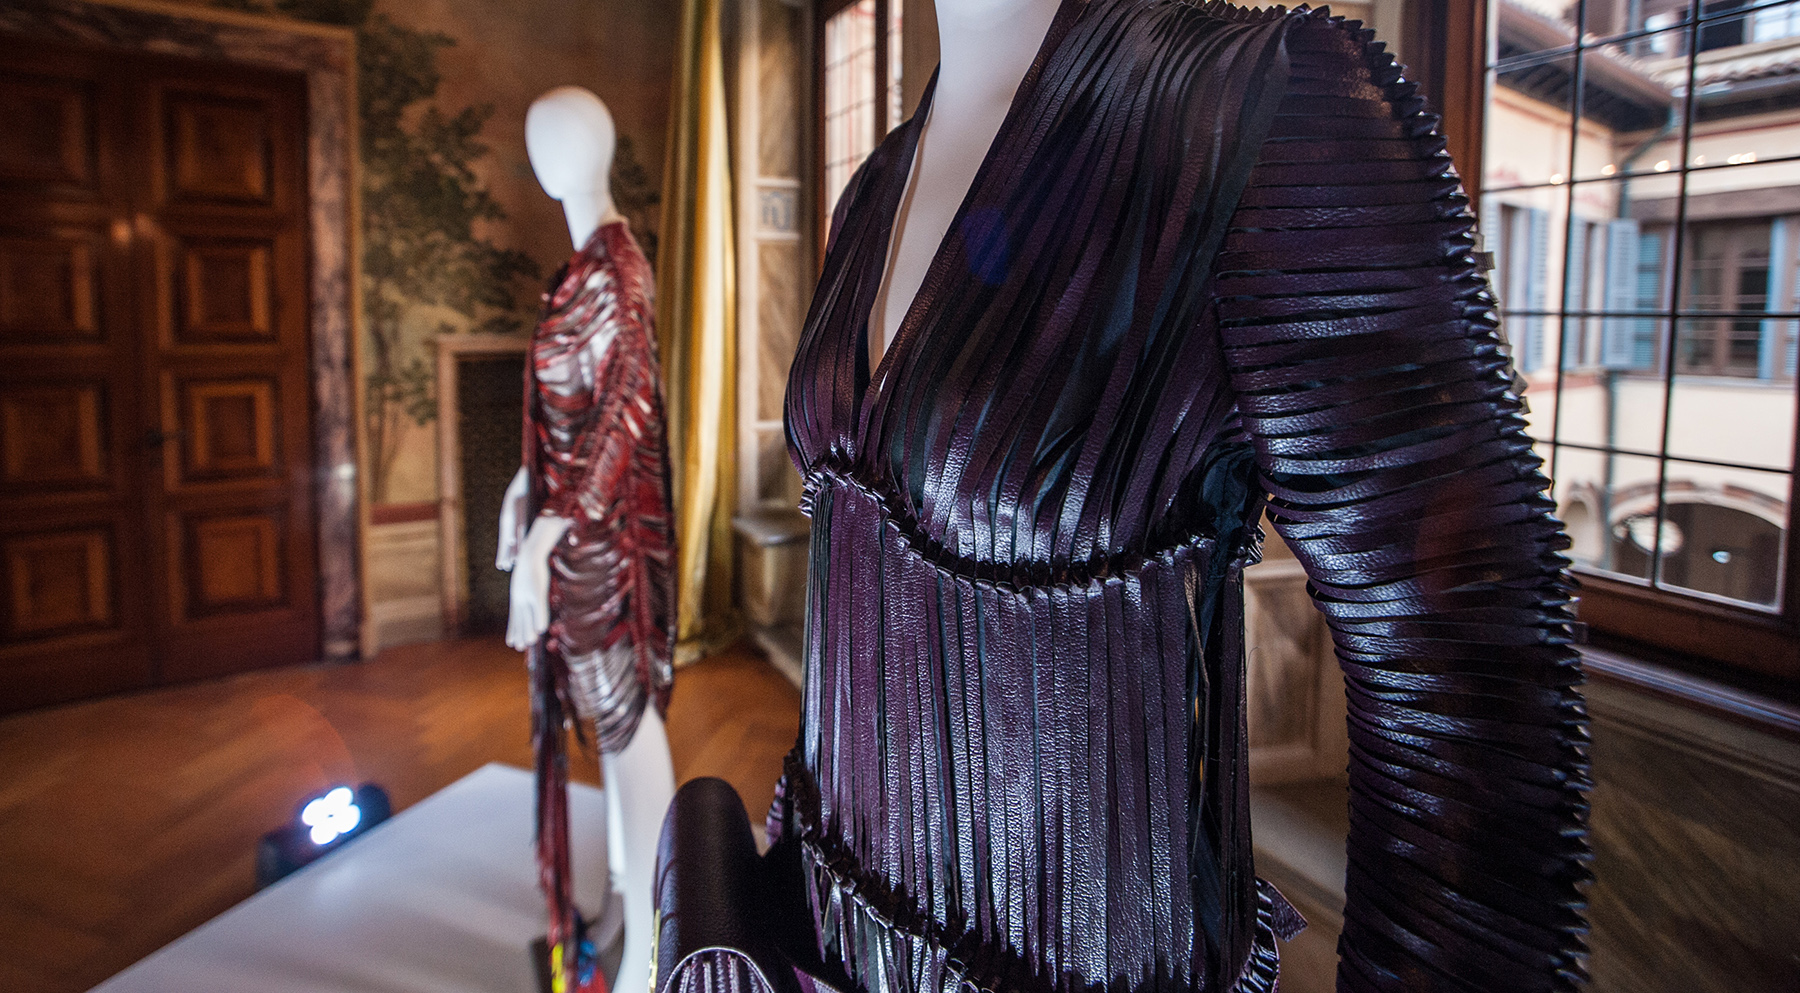 The production of this leather-like textile is considered to be zero impact as it is created from grape marc - a waste material from wine production.